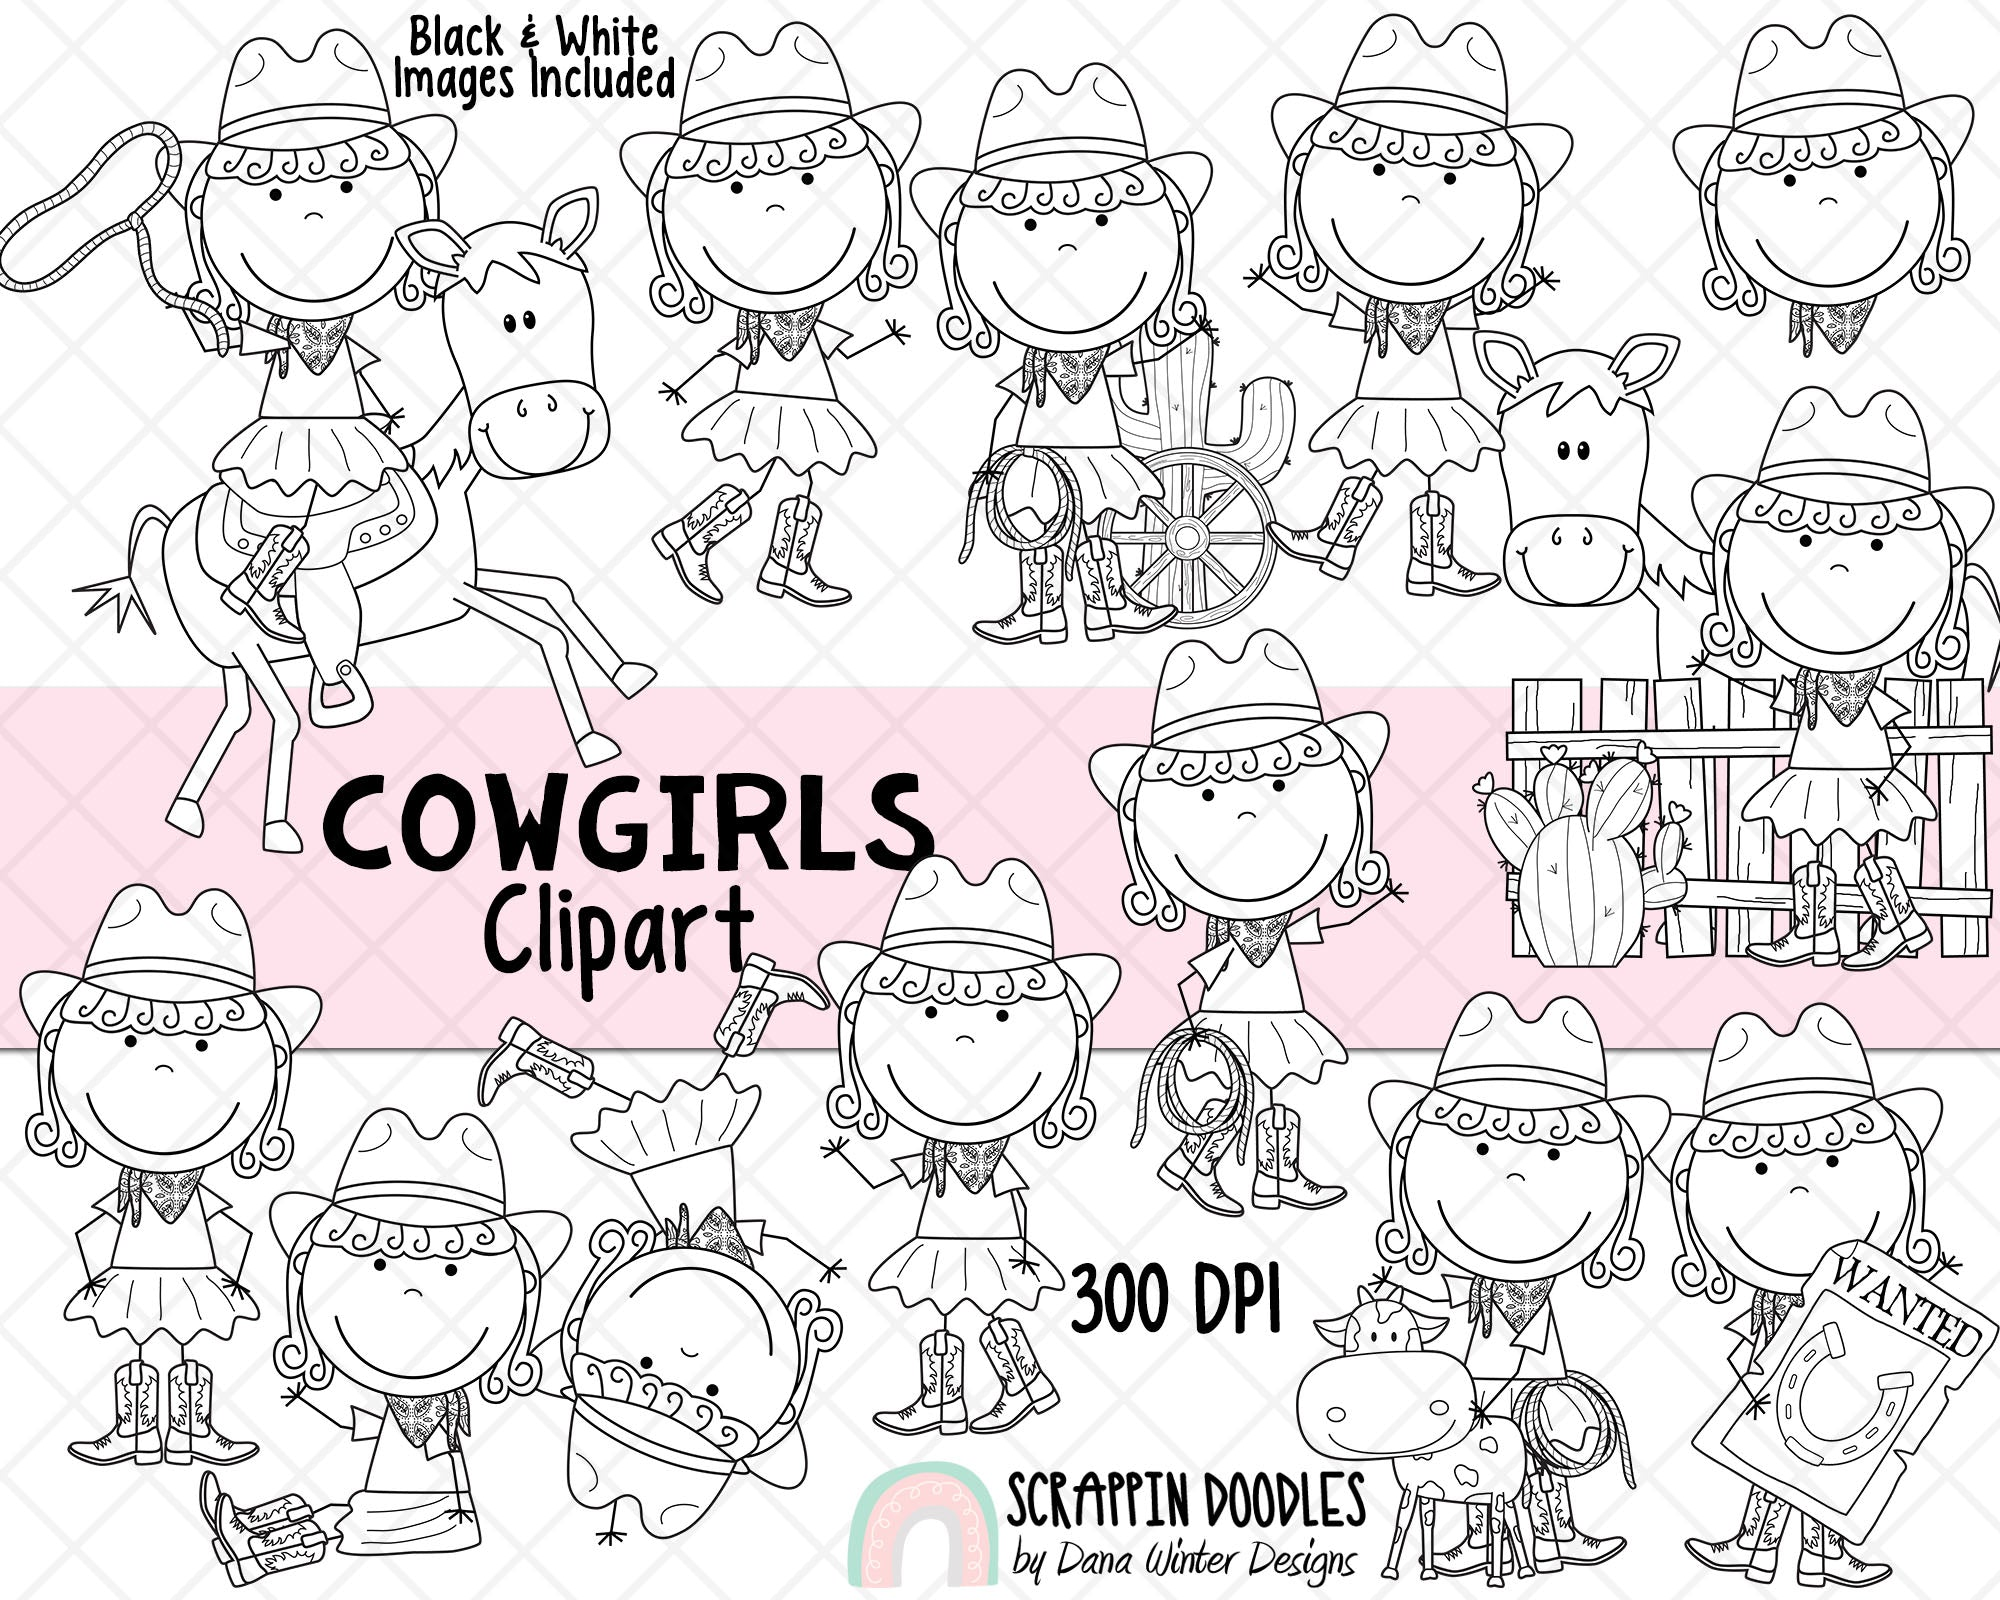 Cowgirl ClipArt - Cowgirls - Western ClipArt - Wild West Clipart - Southwest ClipArt - CowGirl Riding Horse ClipArt - Wanted Poster